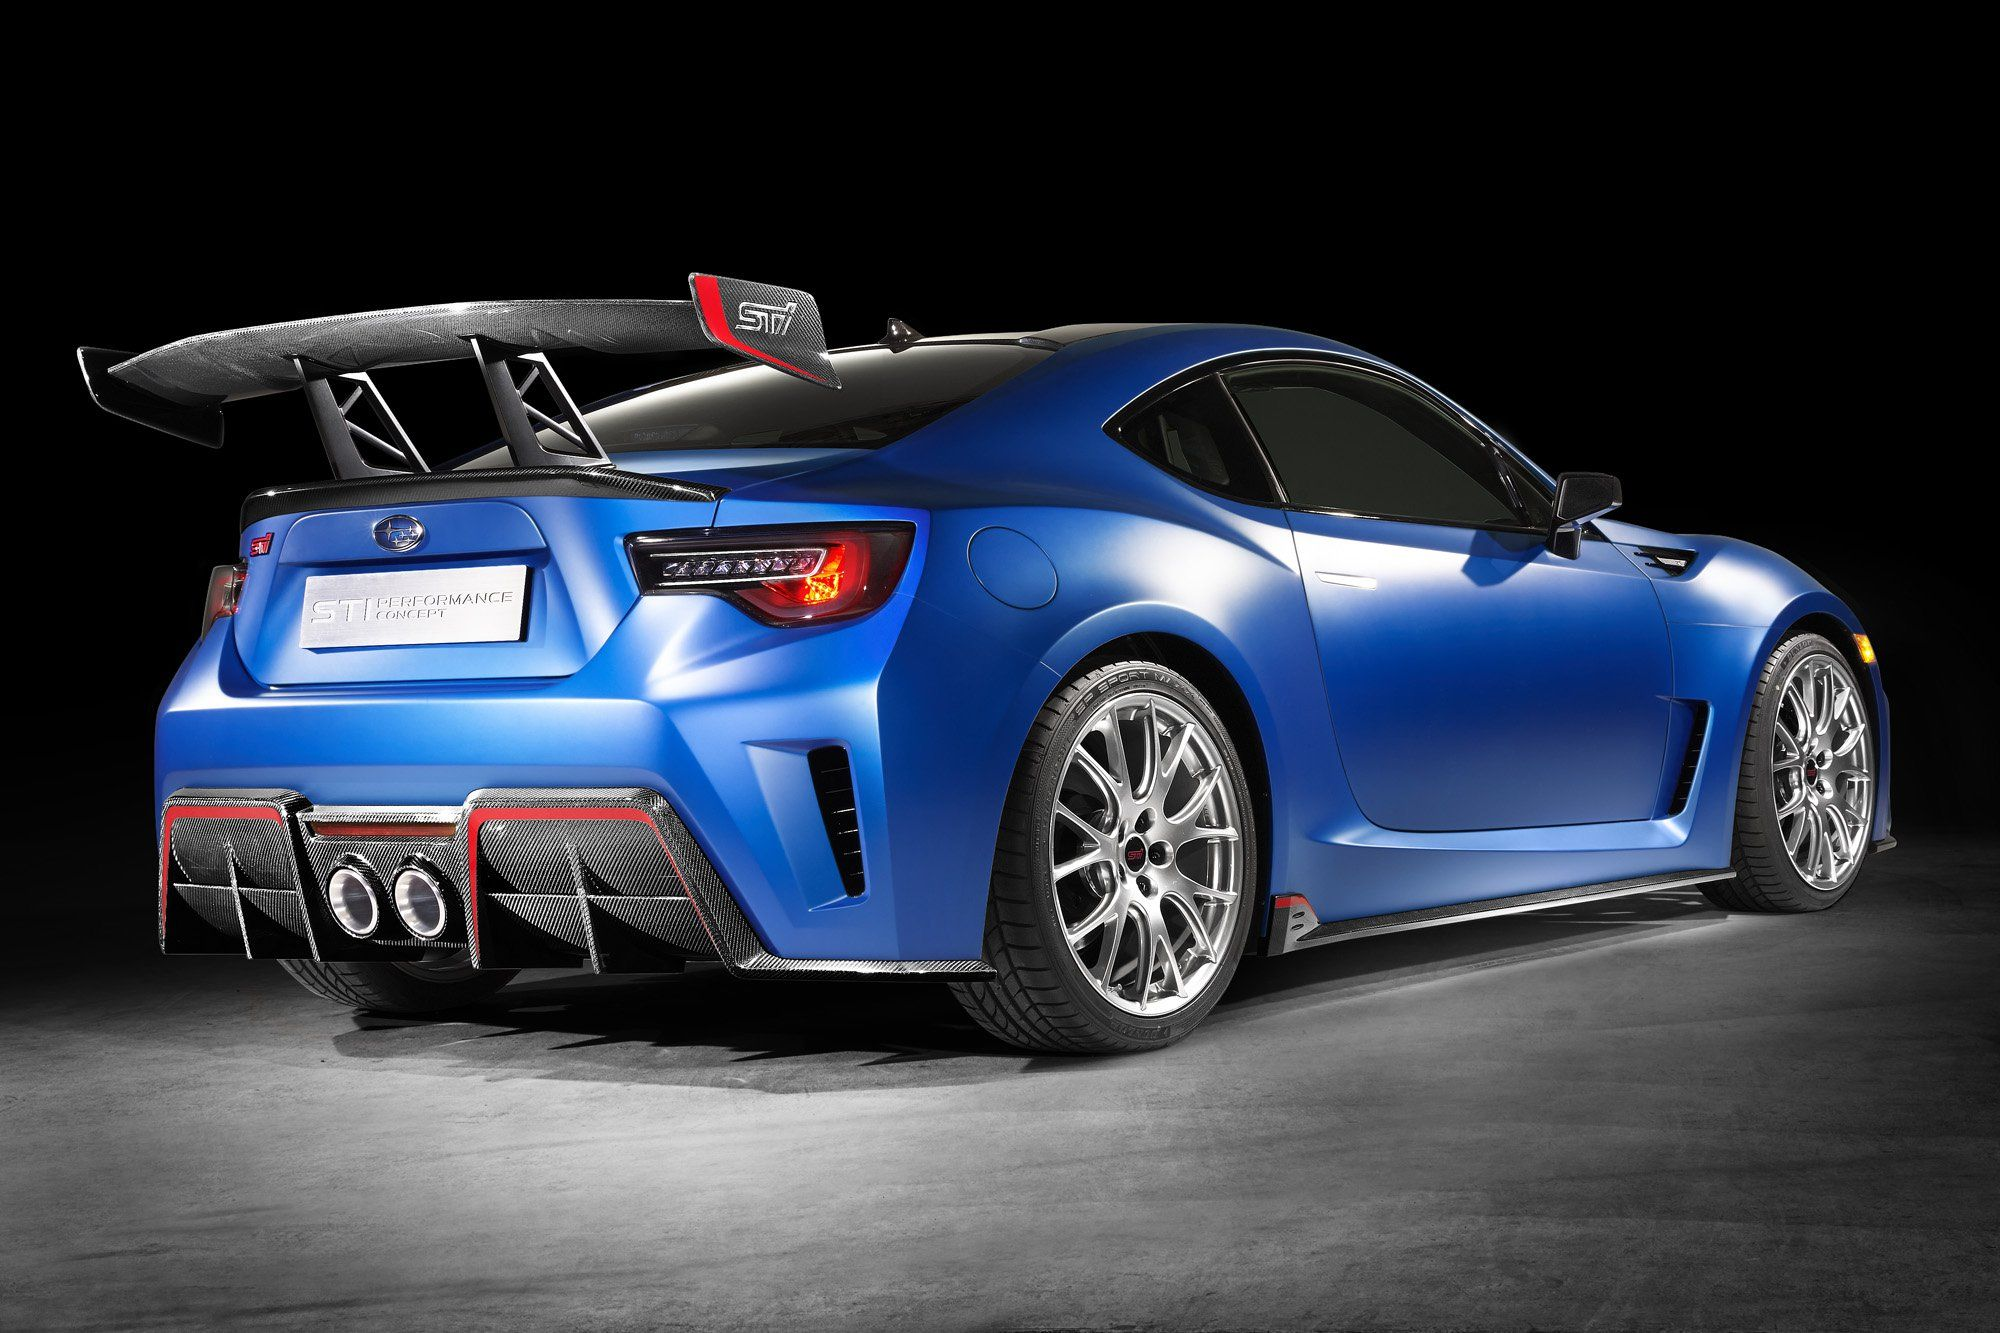 2017 new cars coming out subaru brz new cars 2017 incoming search terms brz sti specs subaru brz sti horsepower subaru brz sti new cars